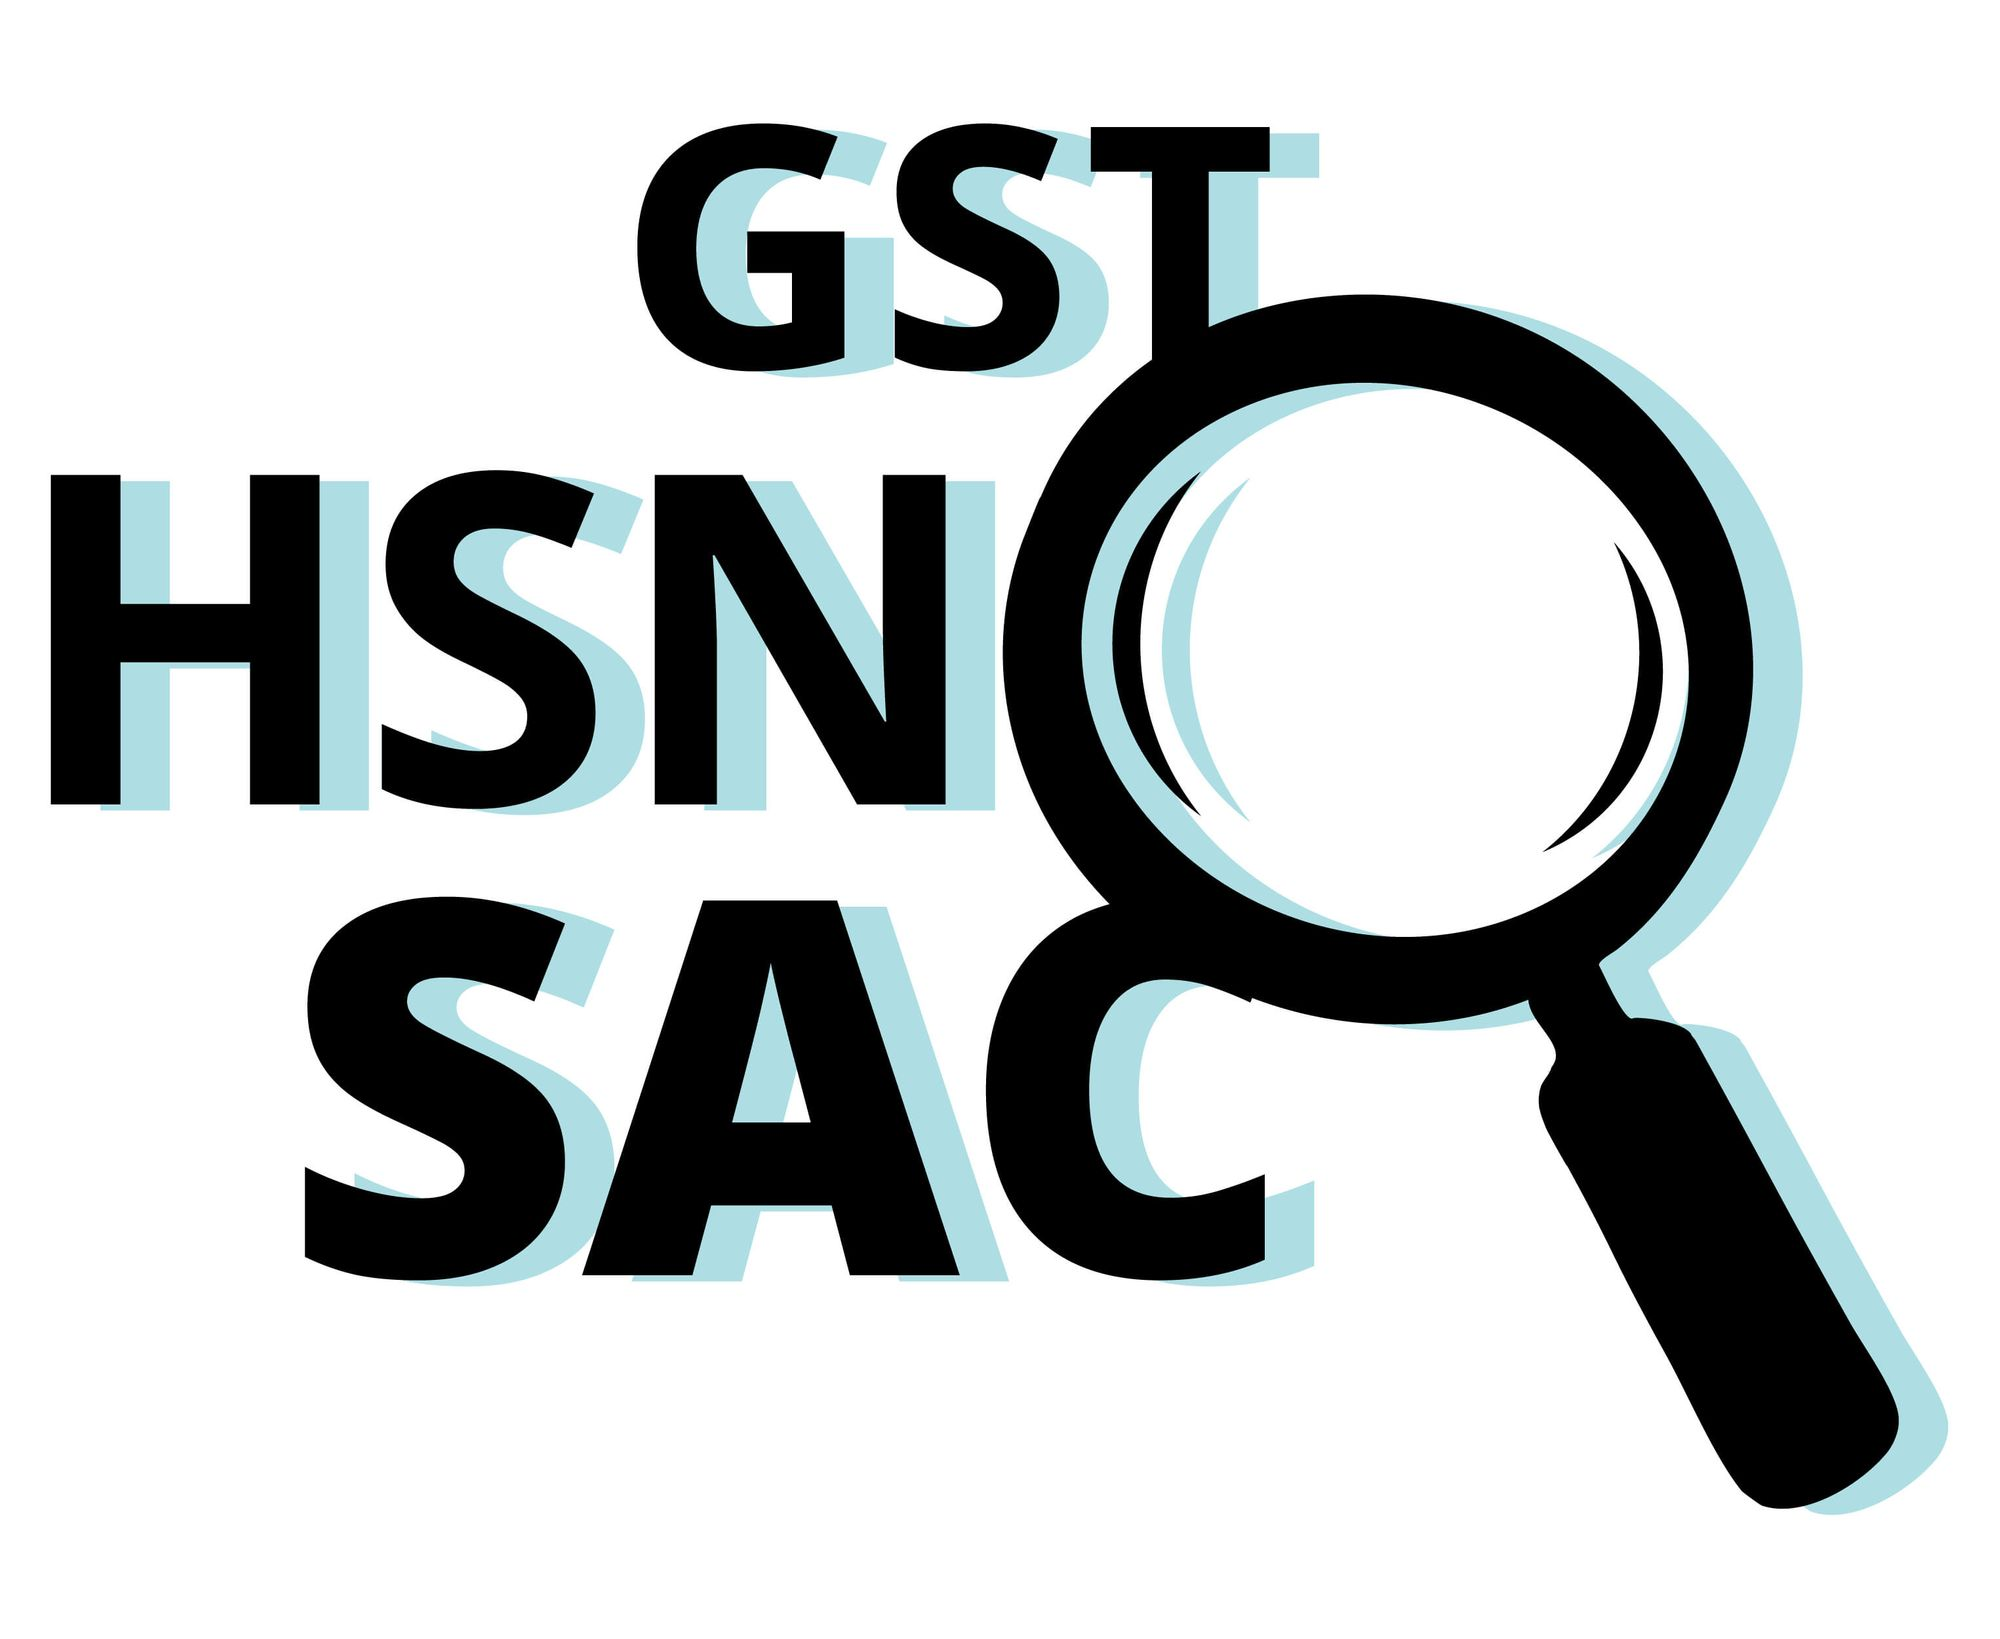 GST SAC HNS - Lookup codes for India GST against white background